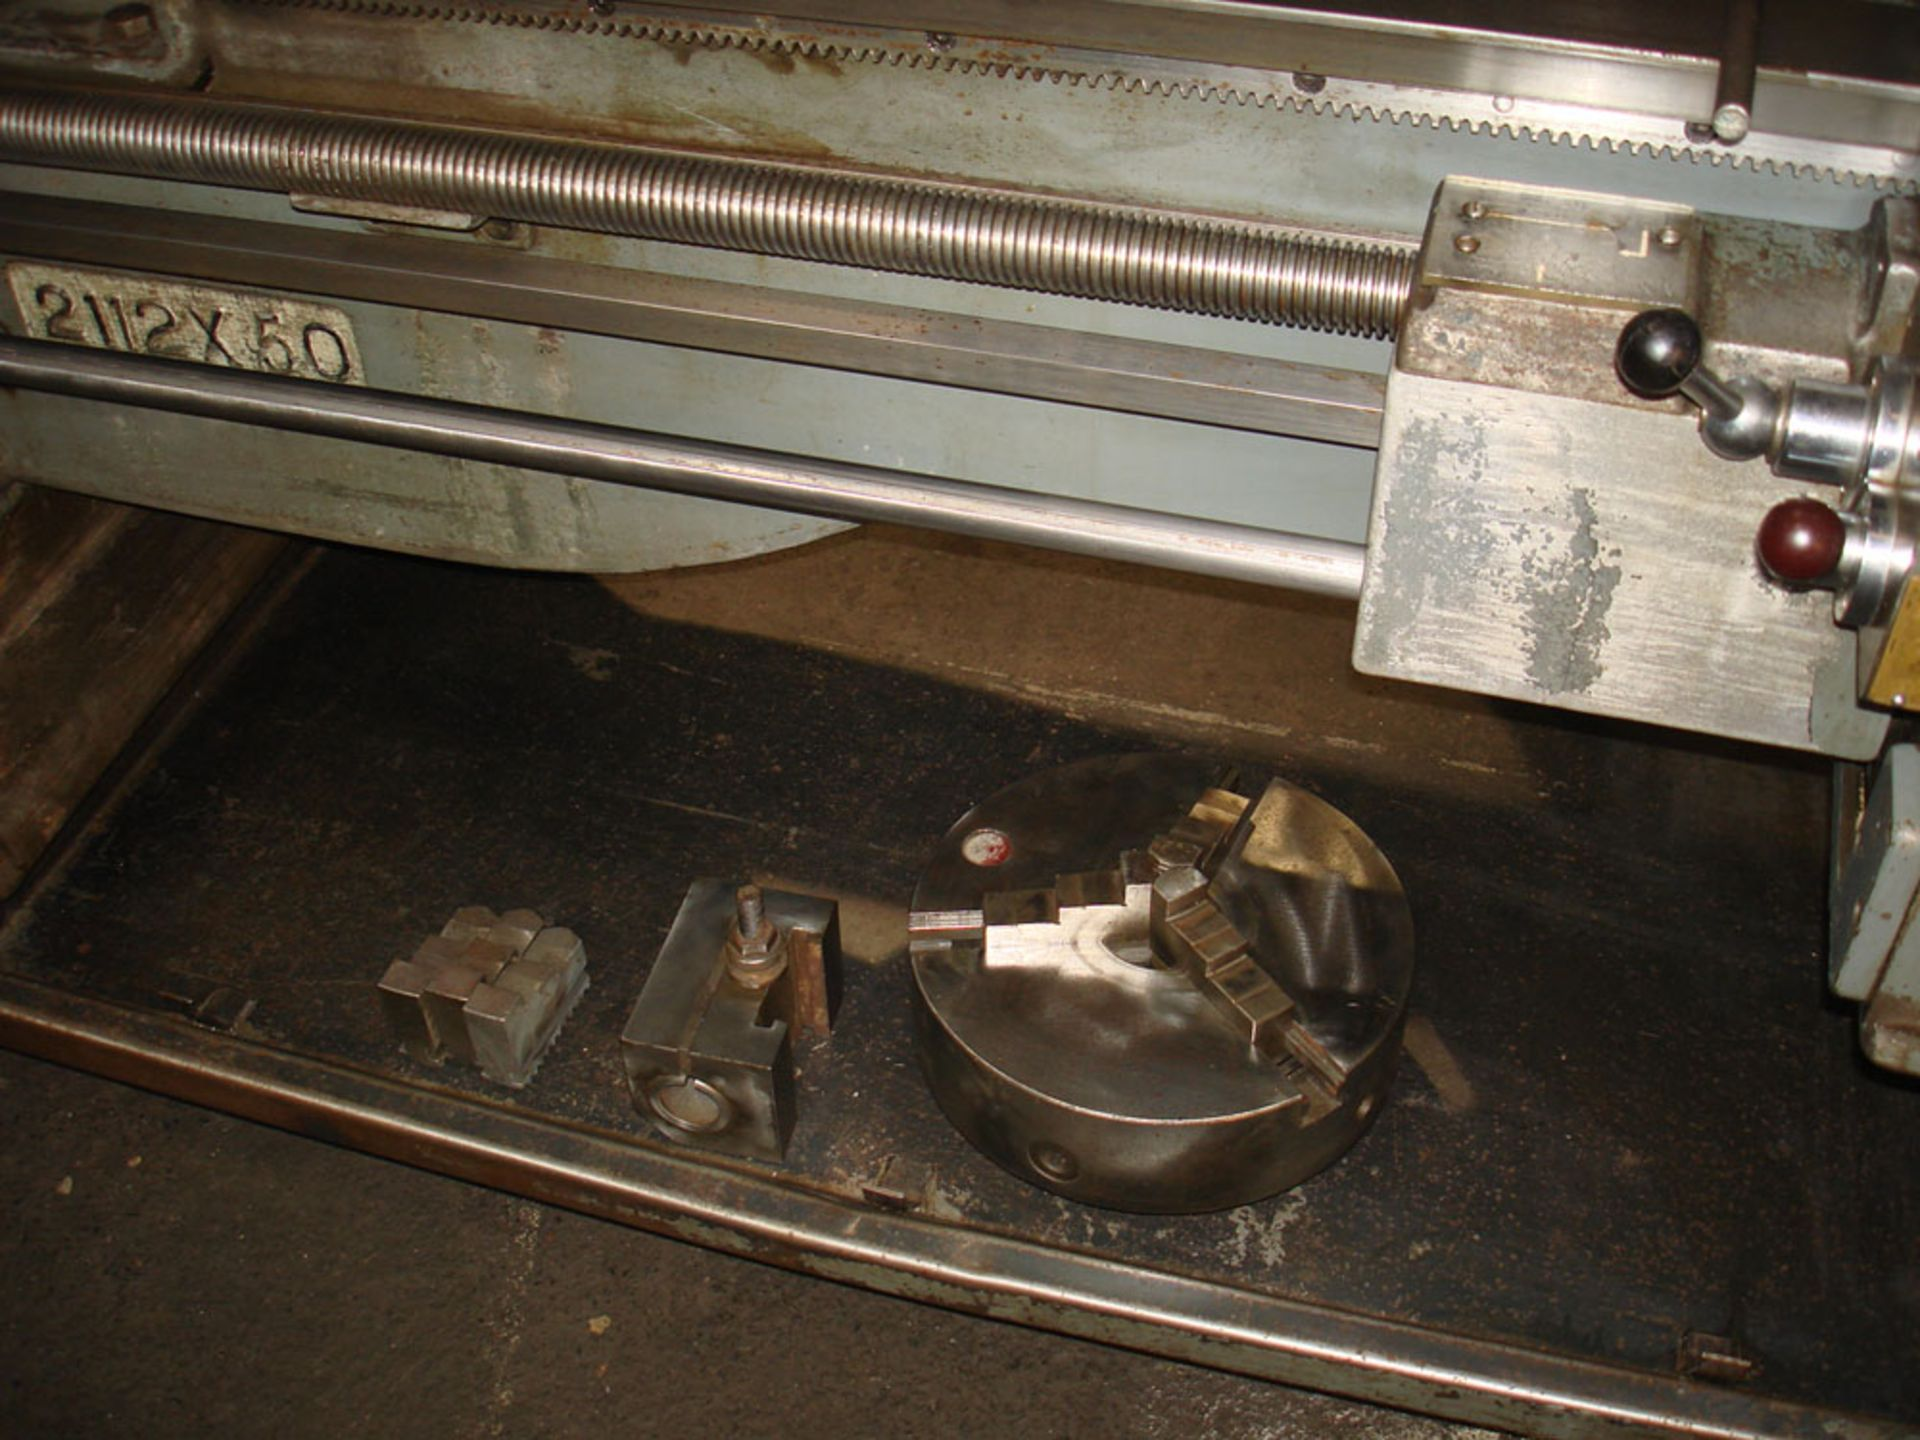 """Dean Smith & Grace 2112 x 50 Gap Bed Centre Lathe. Swing Over Bed 21"""". Distance Between Centres 50"""". - Image 9 of 9"""